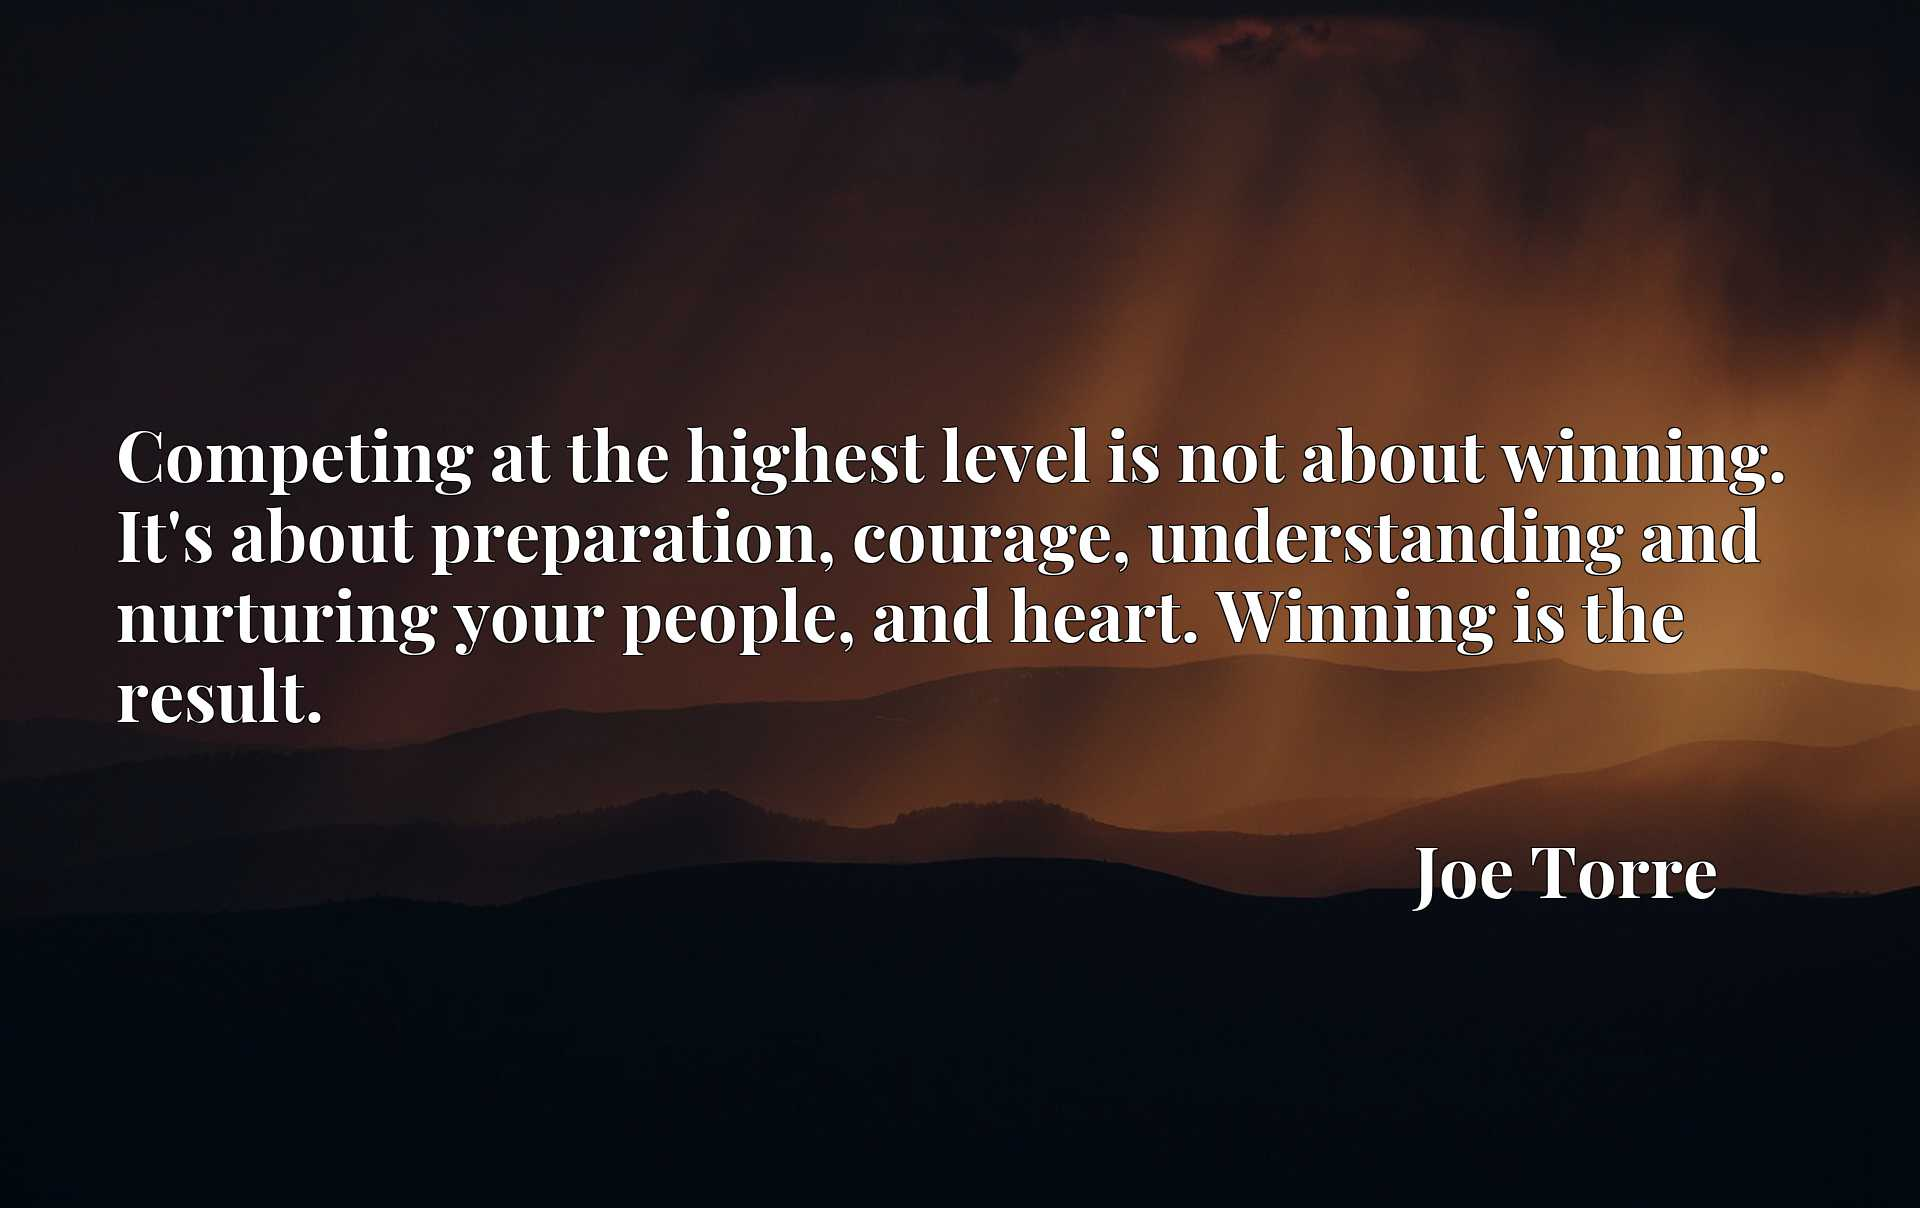 Competing at the highest level is not about winning. It's about preparation, courage, understanding and nurturing your people, and heart. Winning is the result.